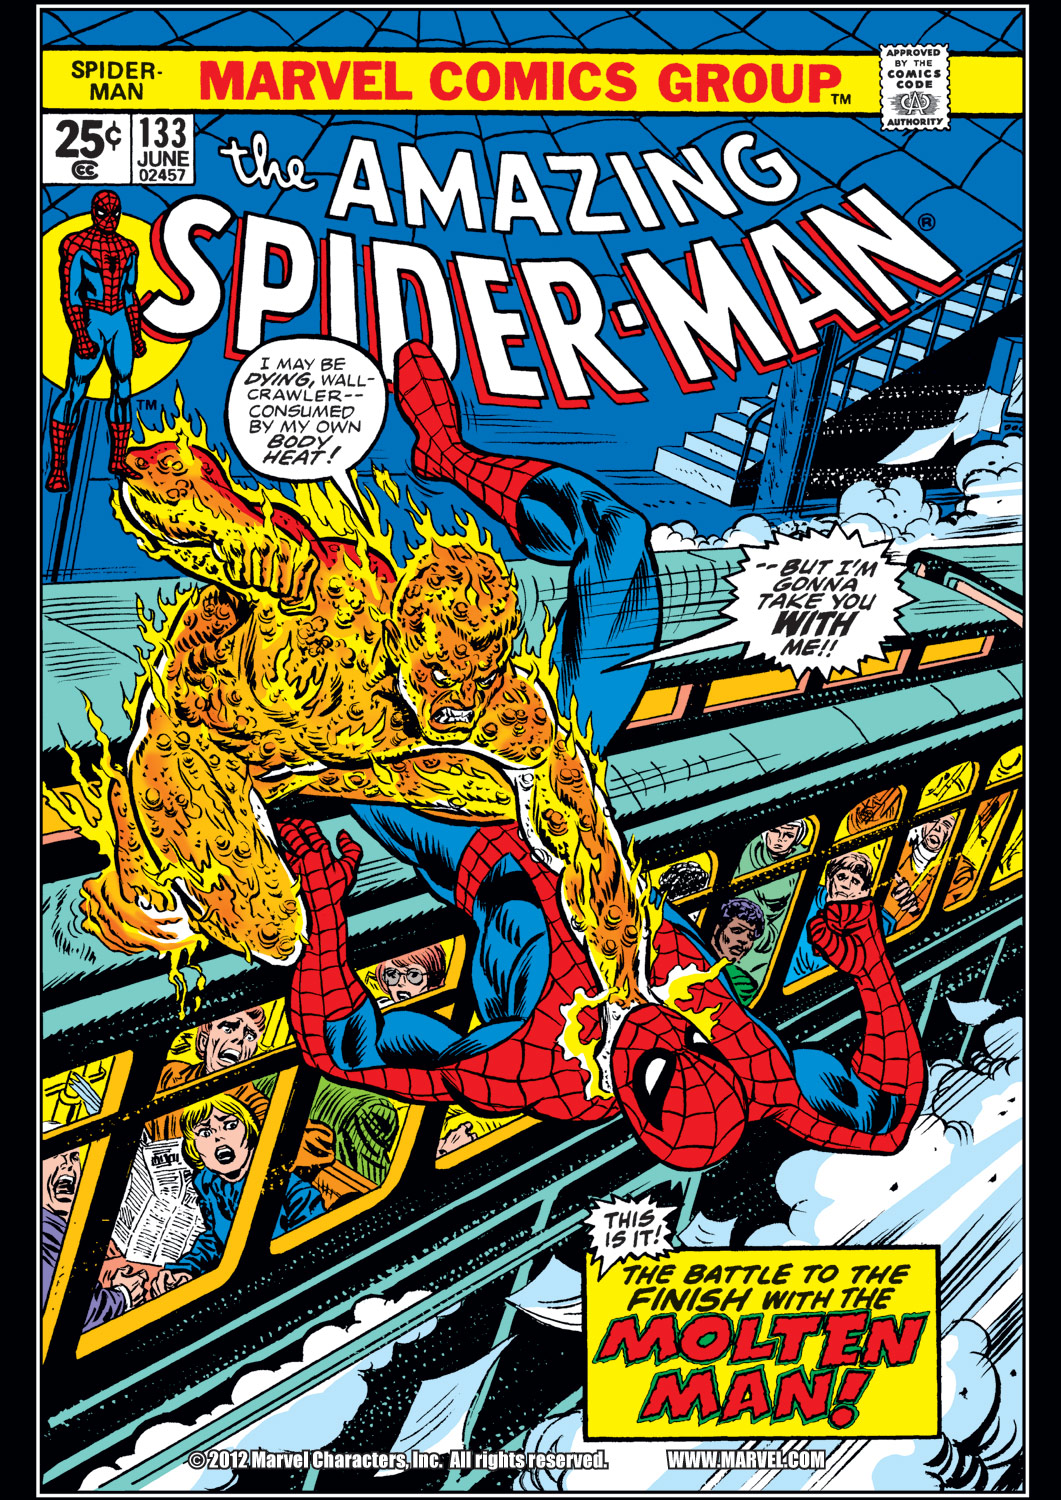 The Amazing Spider-Man (1963) #133